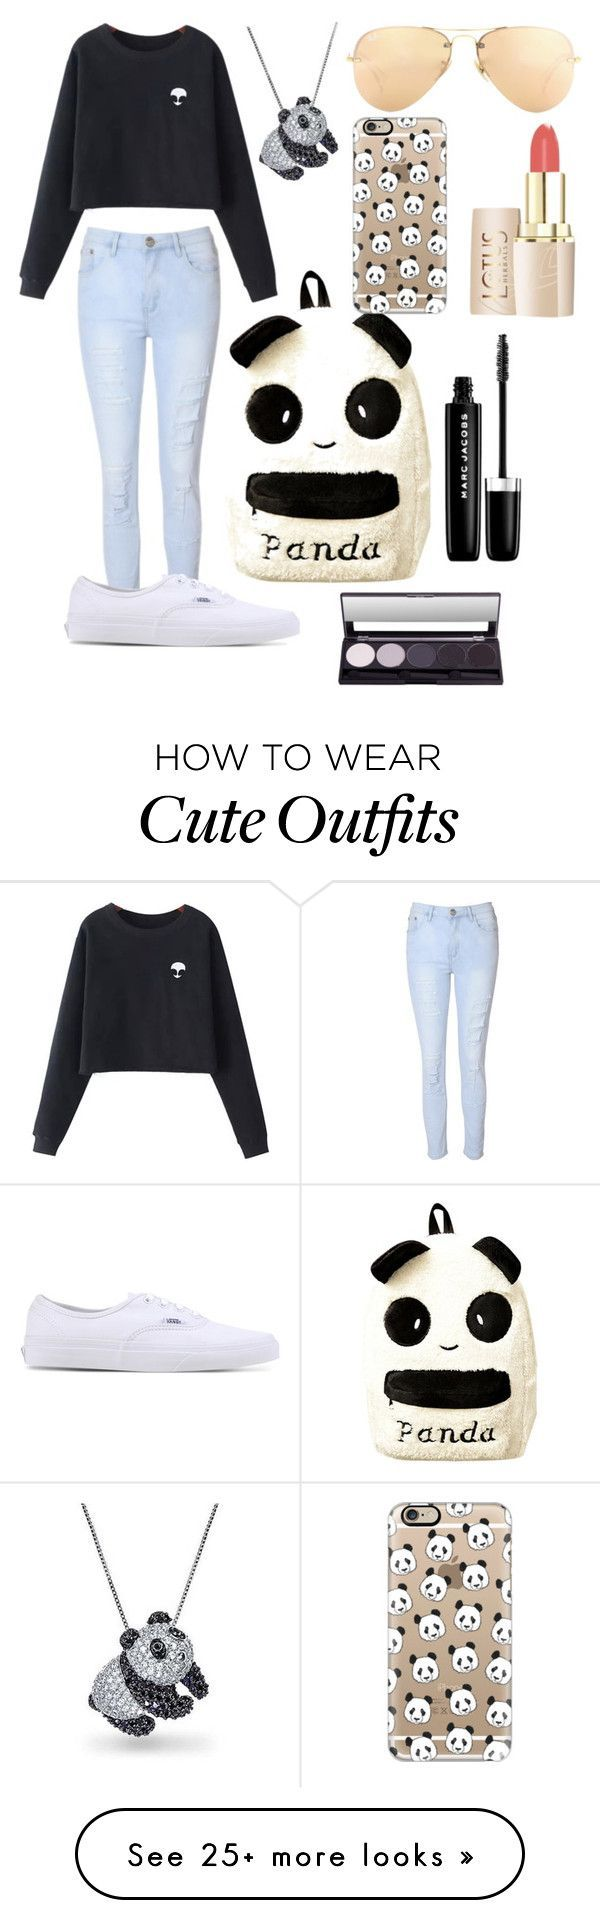 """Panda outfit for school"" by mimmykitty327 on Polyvore featuring Glamorous, Chicnova Fashion, Vans, Casetify, Bling Jewelry, Ray-Ban and Marc Jacobs - clothing, moda, urban outfitters, casual, outfits, beach clothes *ad"